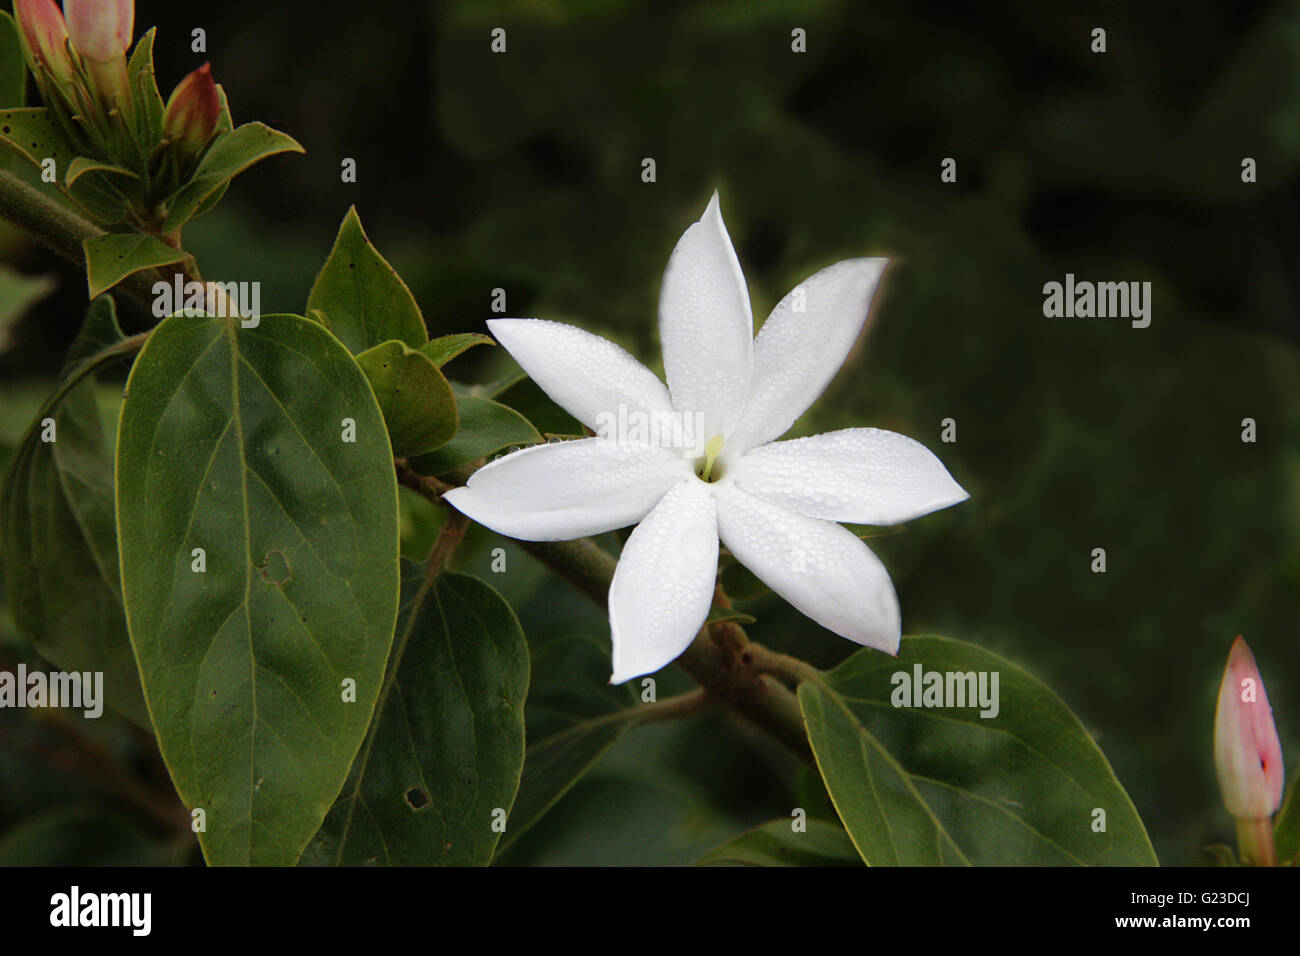 Jasmine Plant Stock Photos Jasmine Plant Stock Images Alamy